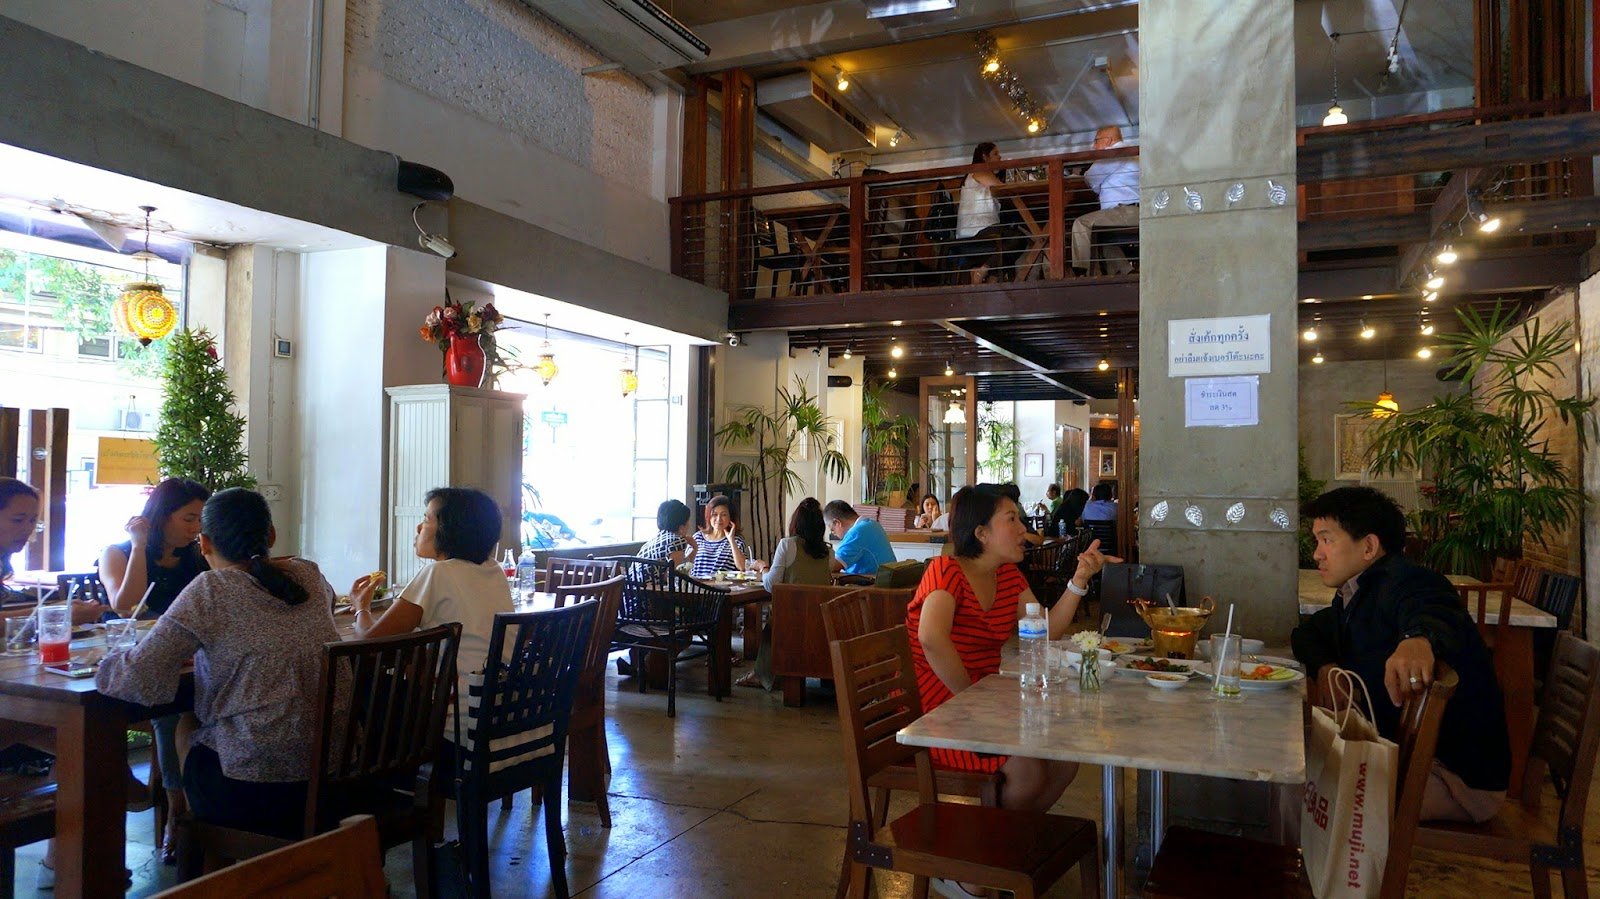 Musings bangkok eats part ii the white flower bakery and restaurant 6784 7 bamrungmaung rd watthepsirin pomprabsattrupai bangkok 101000 0 2225 2749 50 mightylinksfo